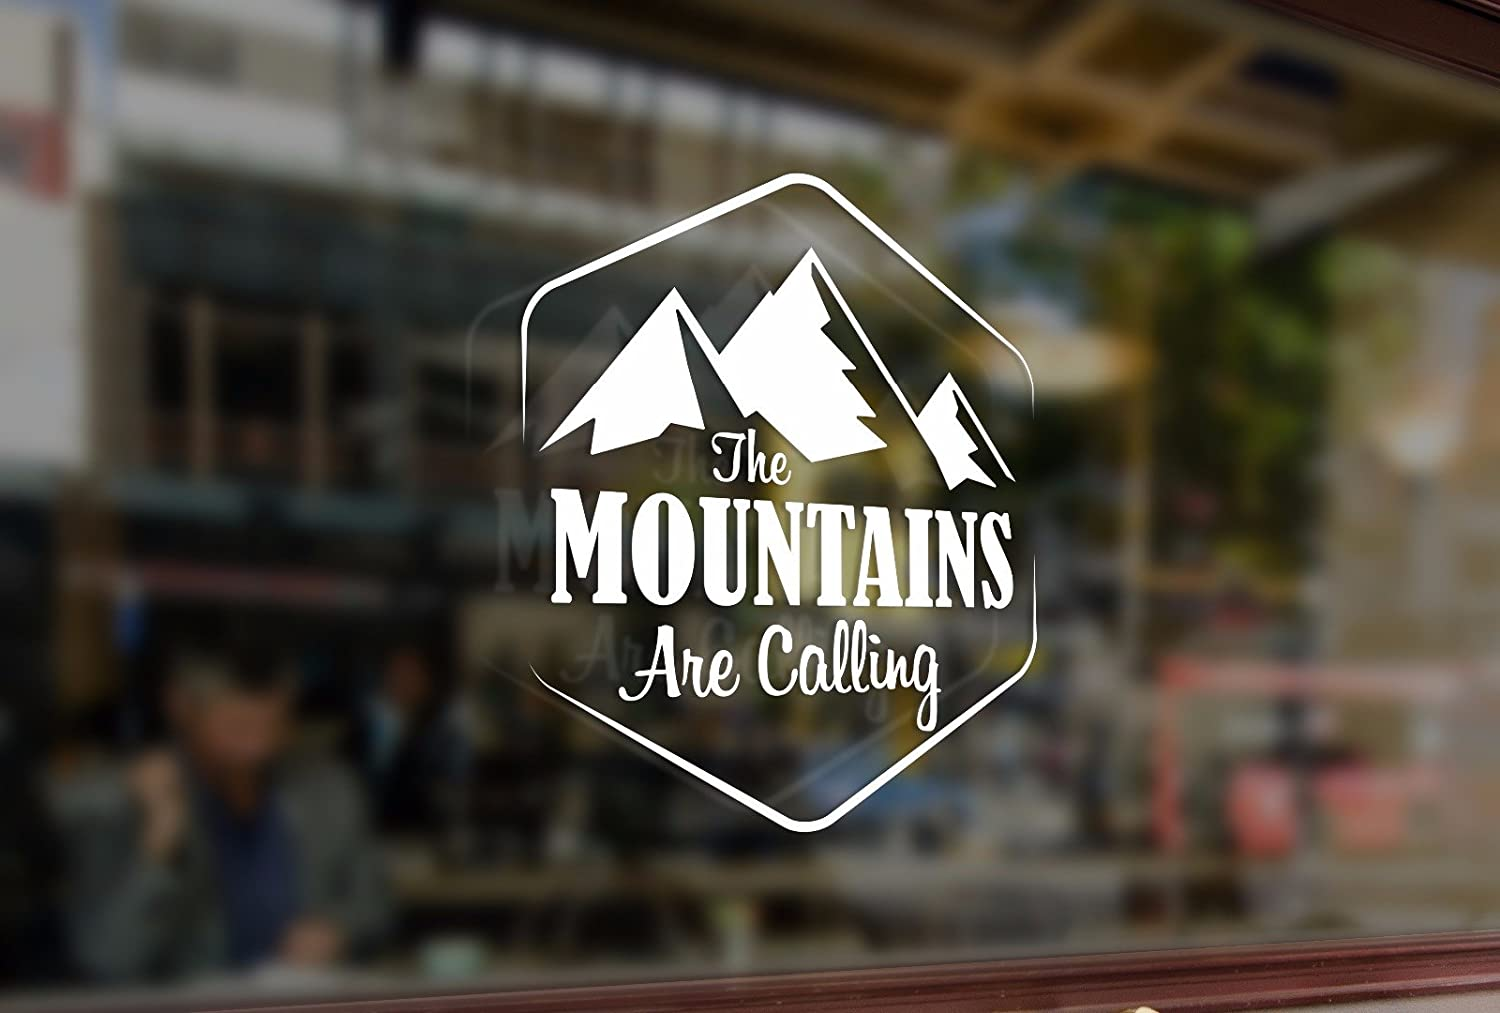 25cm The MOUNTAINS Are Calling Climbing Vinyl Stickers Funny Decals Bumper Car Auto Computer Laptop Wall Window Glass Skateboard Snowboard Bananasticker